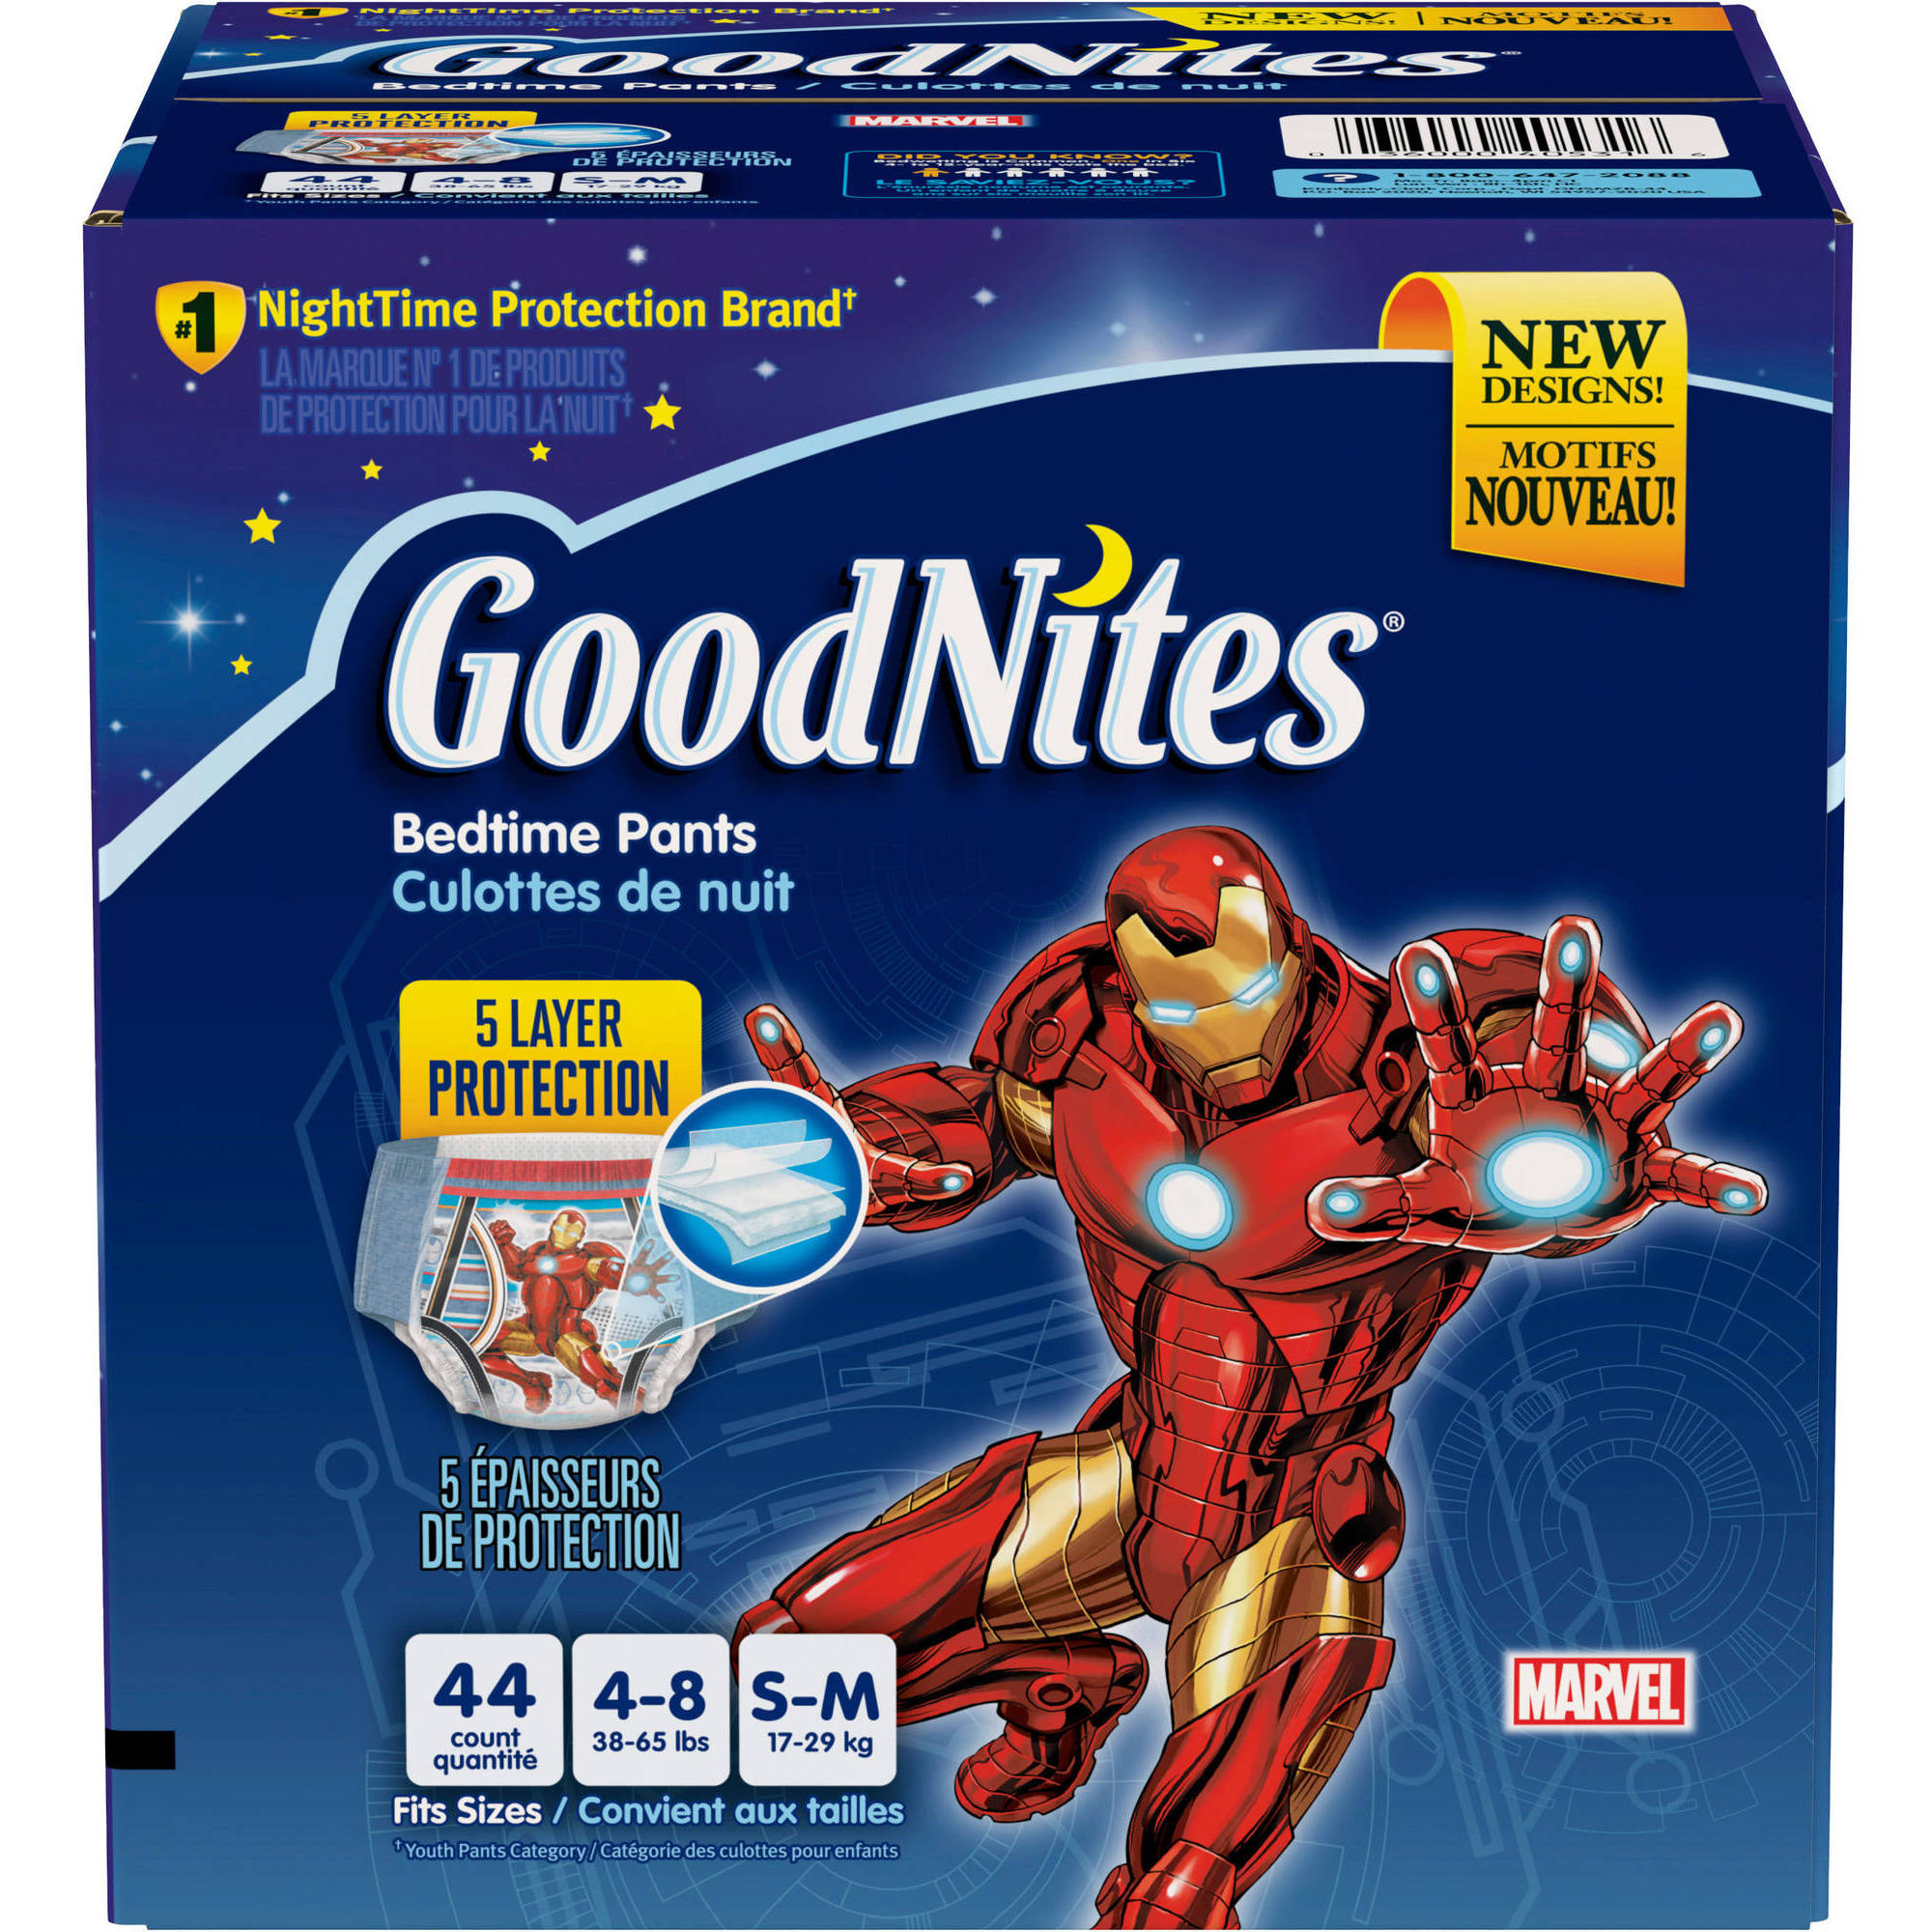 GoodNites Boys' Bedtime Underwear, Super Pack, (Choose Your Size)